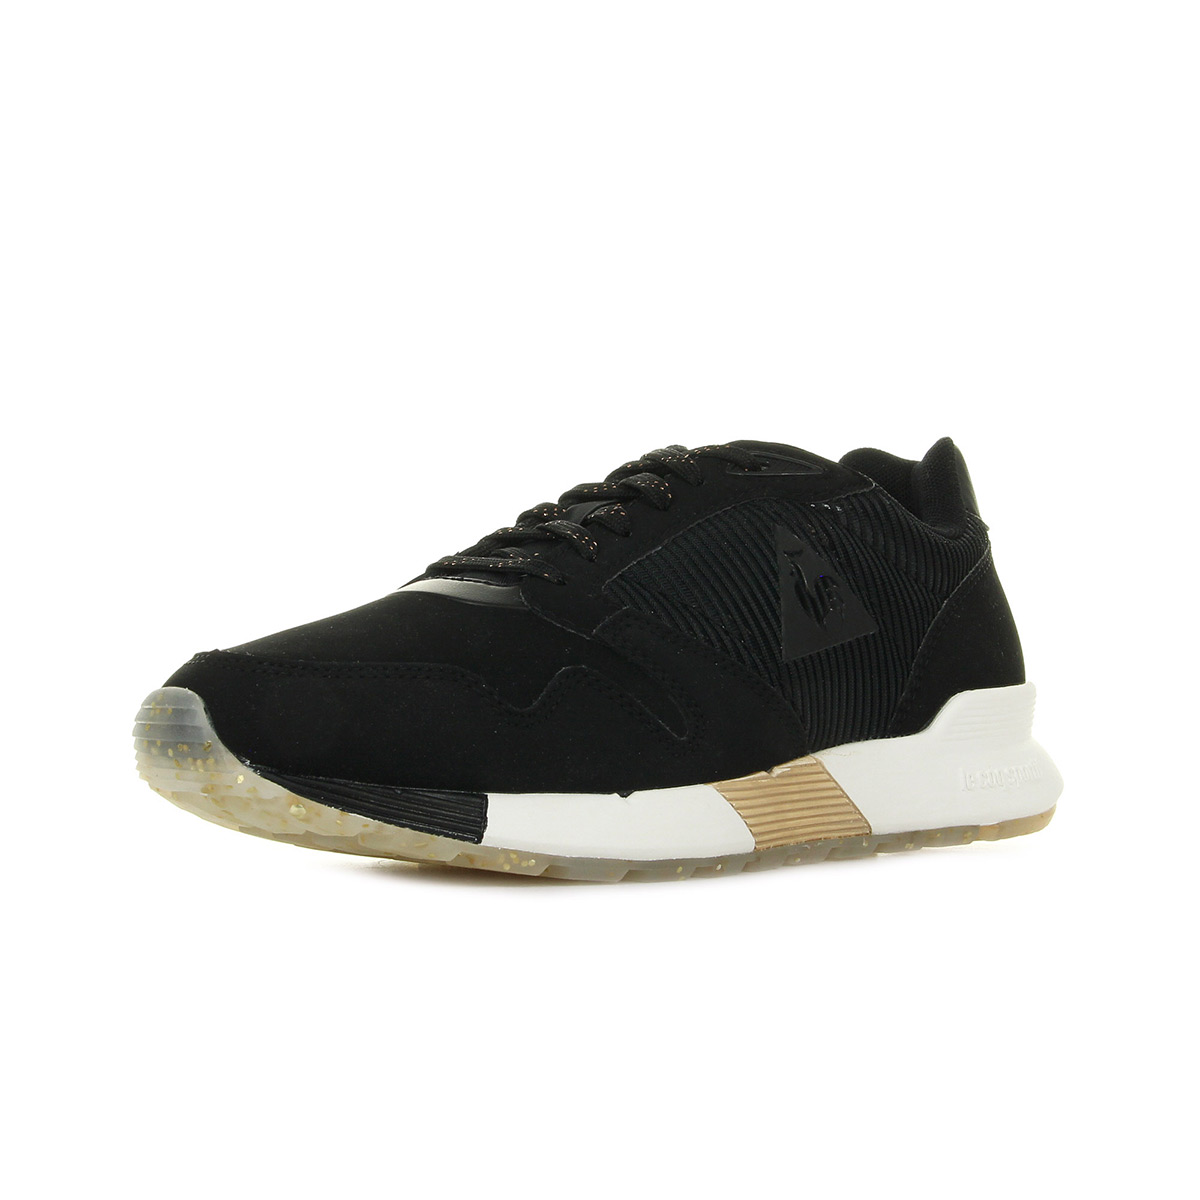 Coq Sportif Sparkly